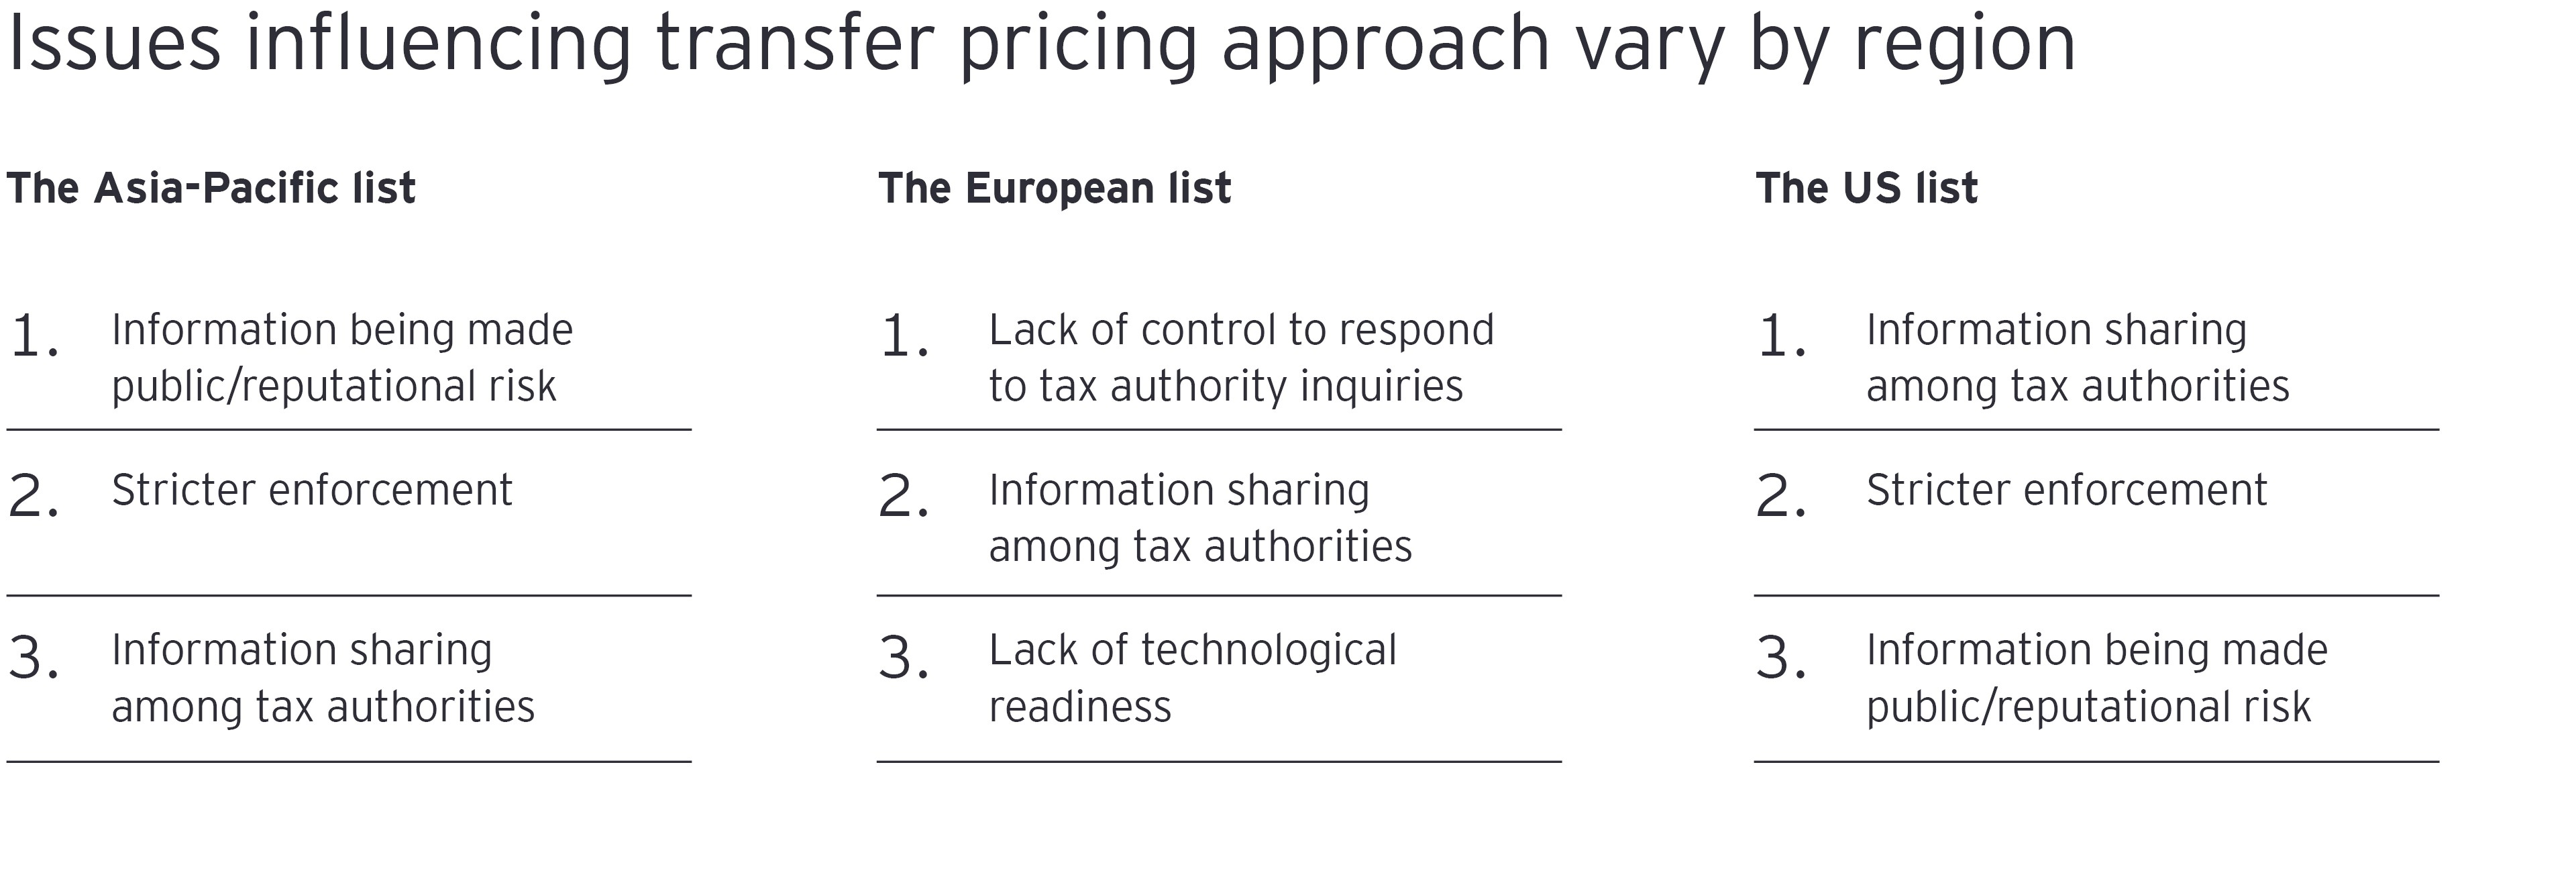 Issues influencing transfer pricing approach vary by region